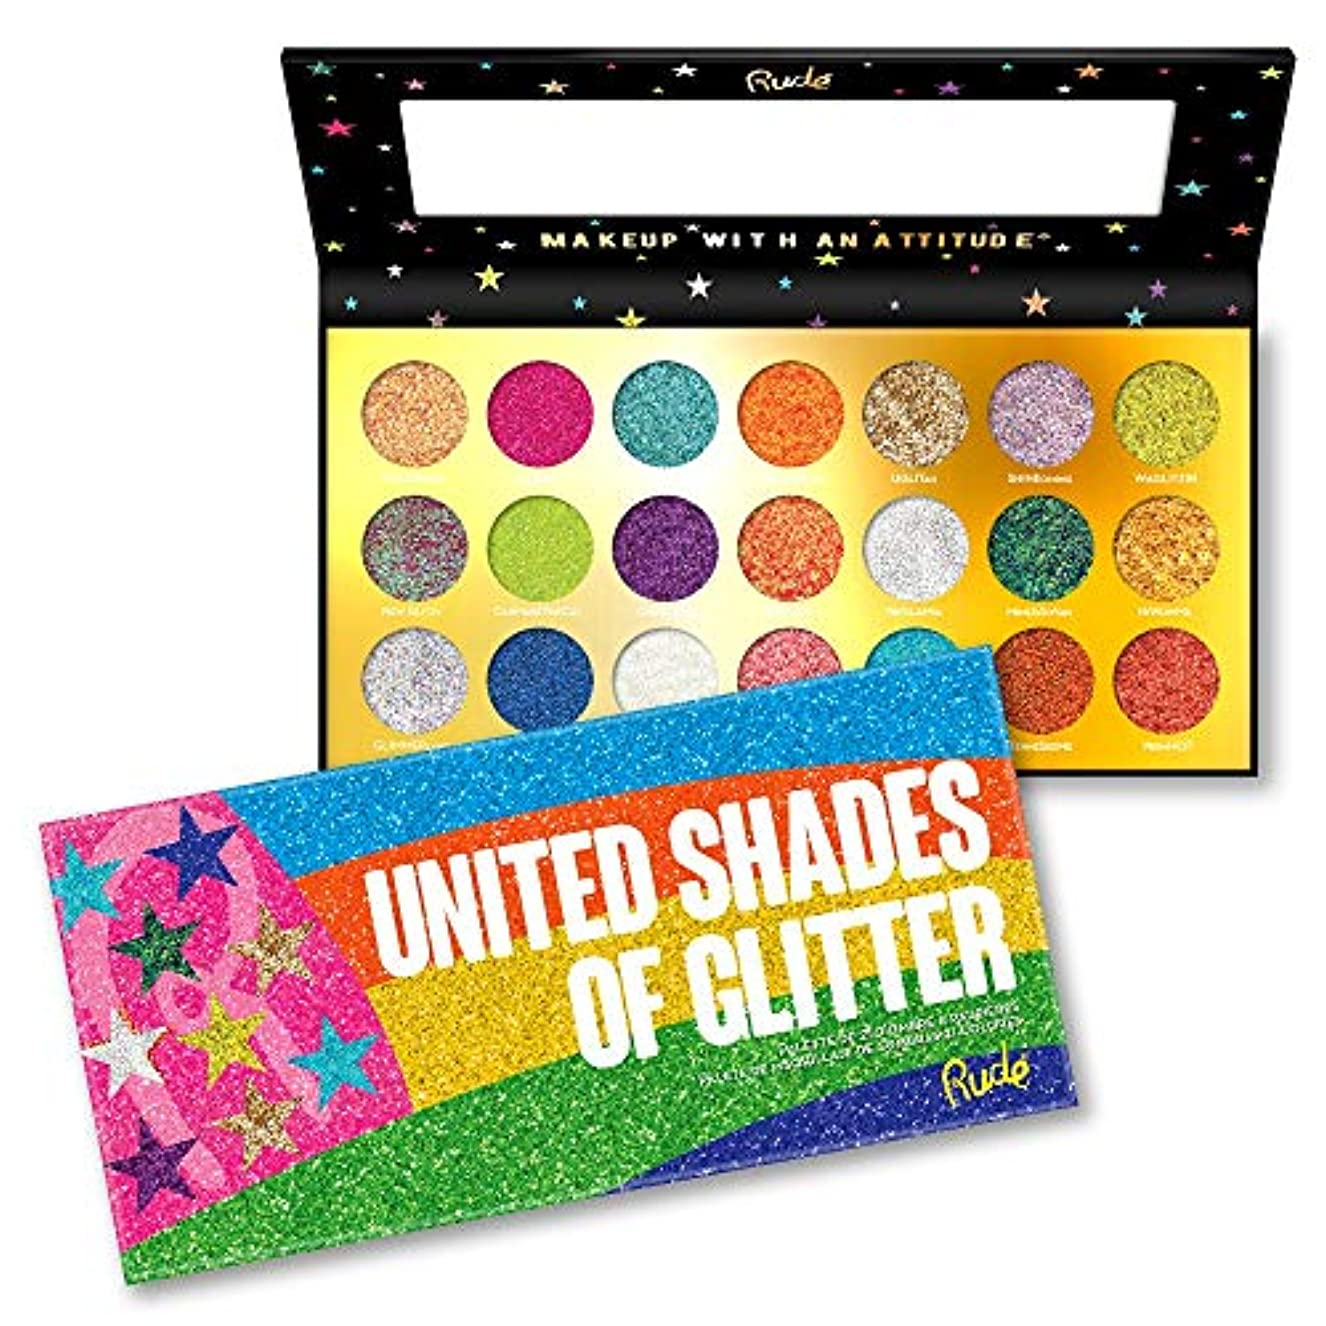 補う活性化やけどRUDE? United Shades of Glitter - 21 Pressed Glitter Palette (並行輸入品)